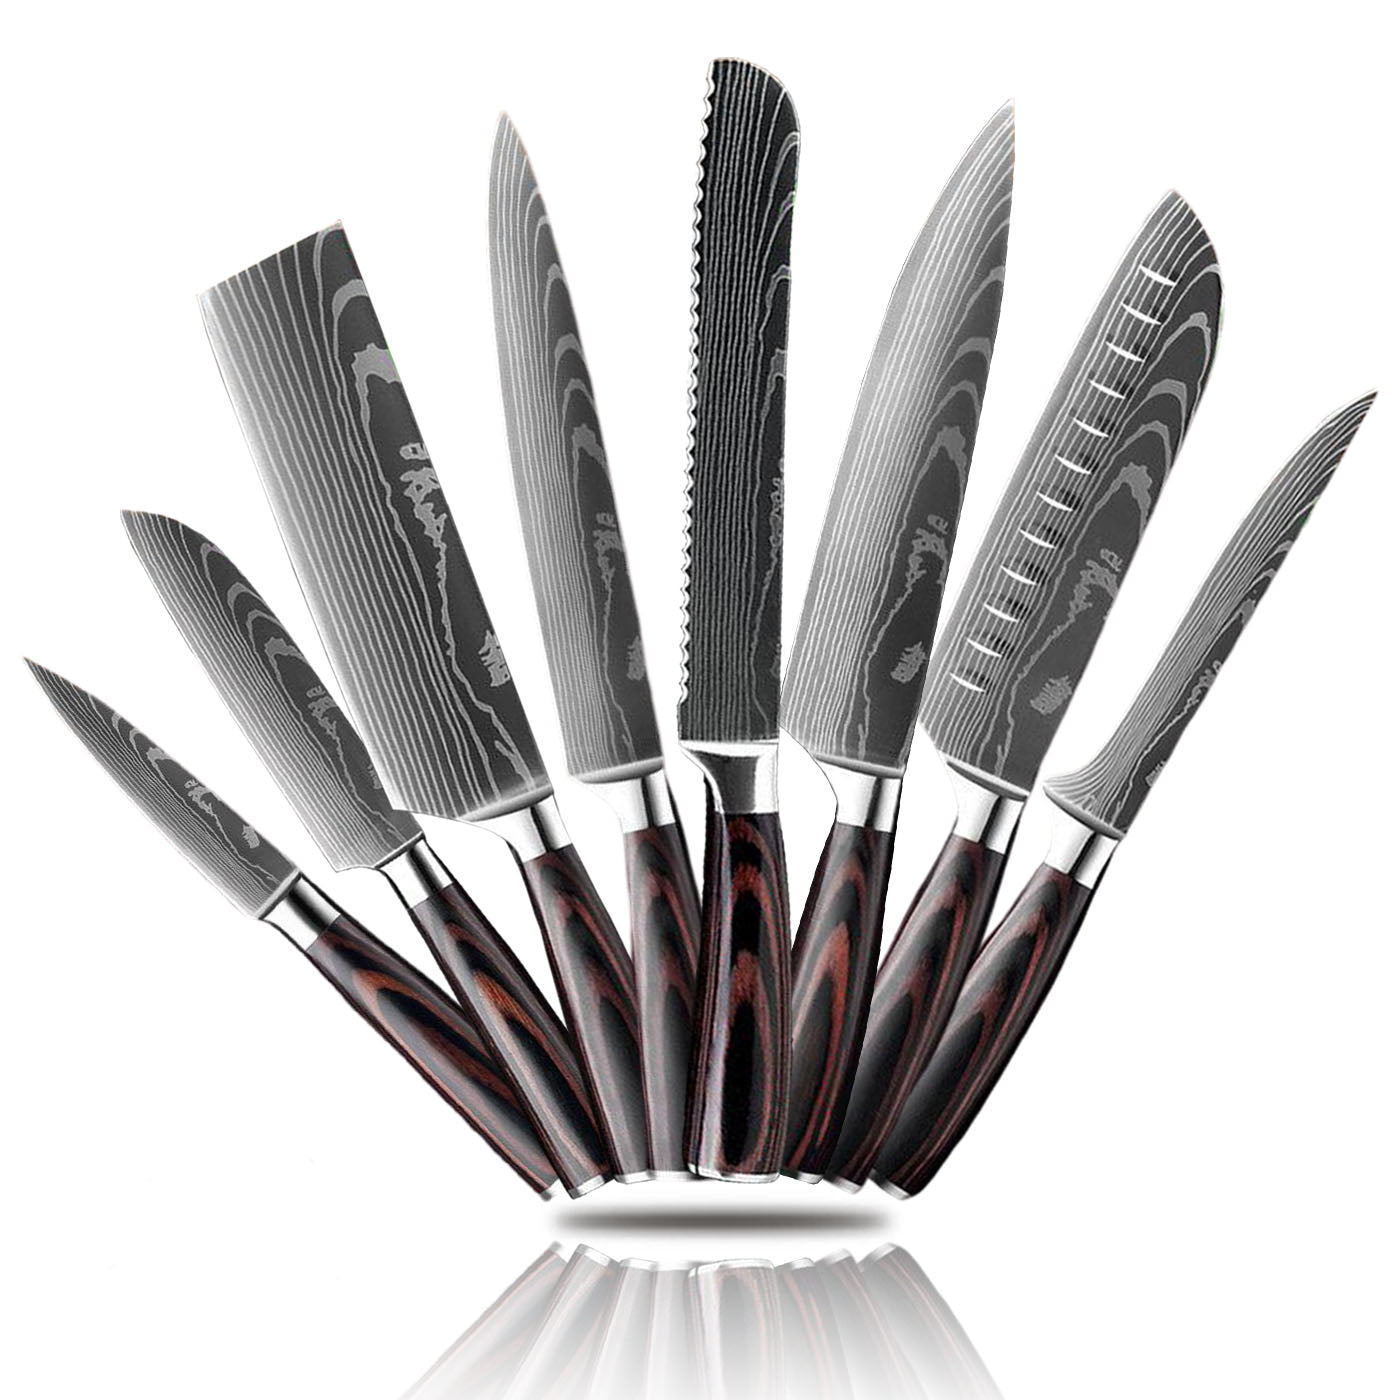 "8 pcs (Over 50% off) / United States ""The Steely Collection"" by Knives Boutique"